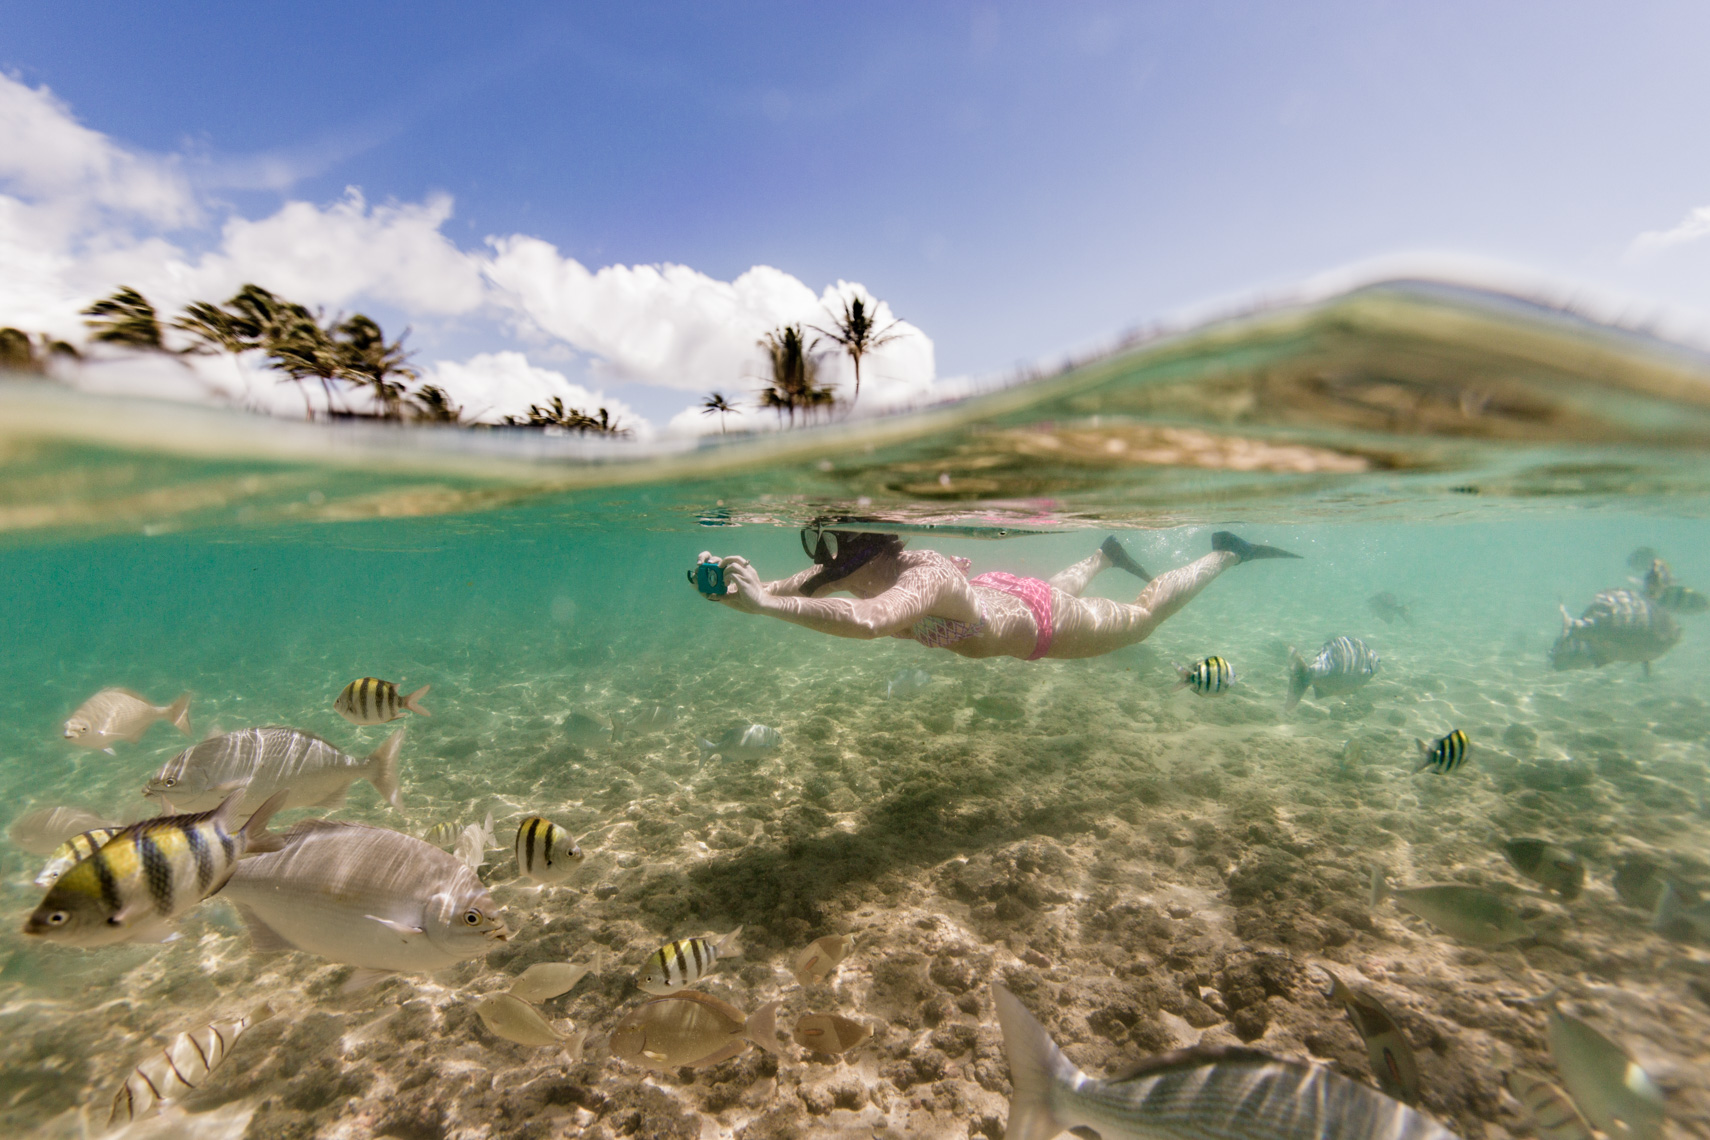 20-Travel-Snorkeling-Underwater-Photos